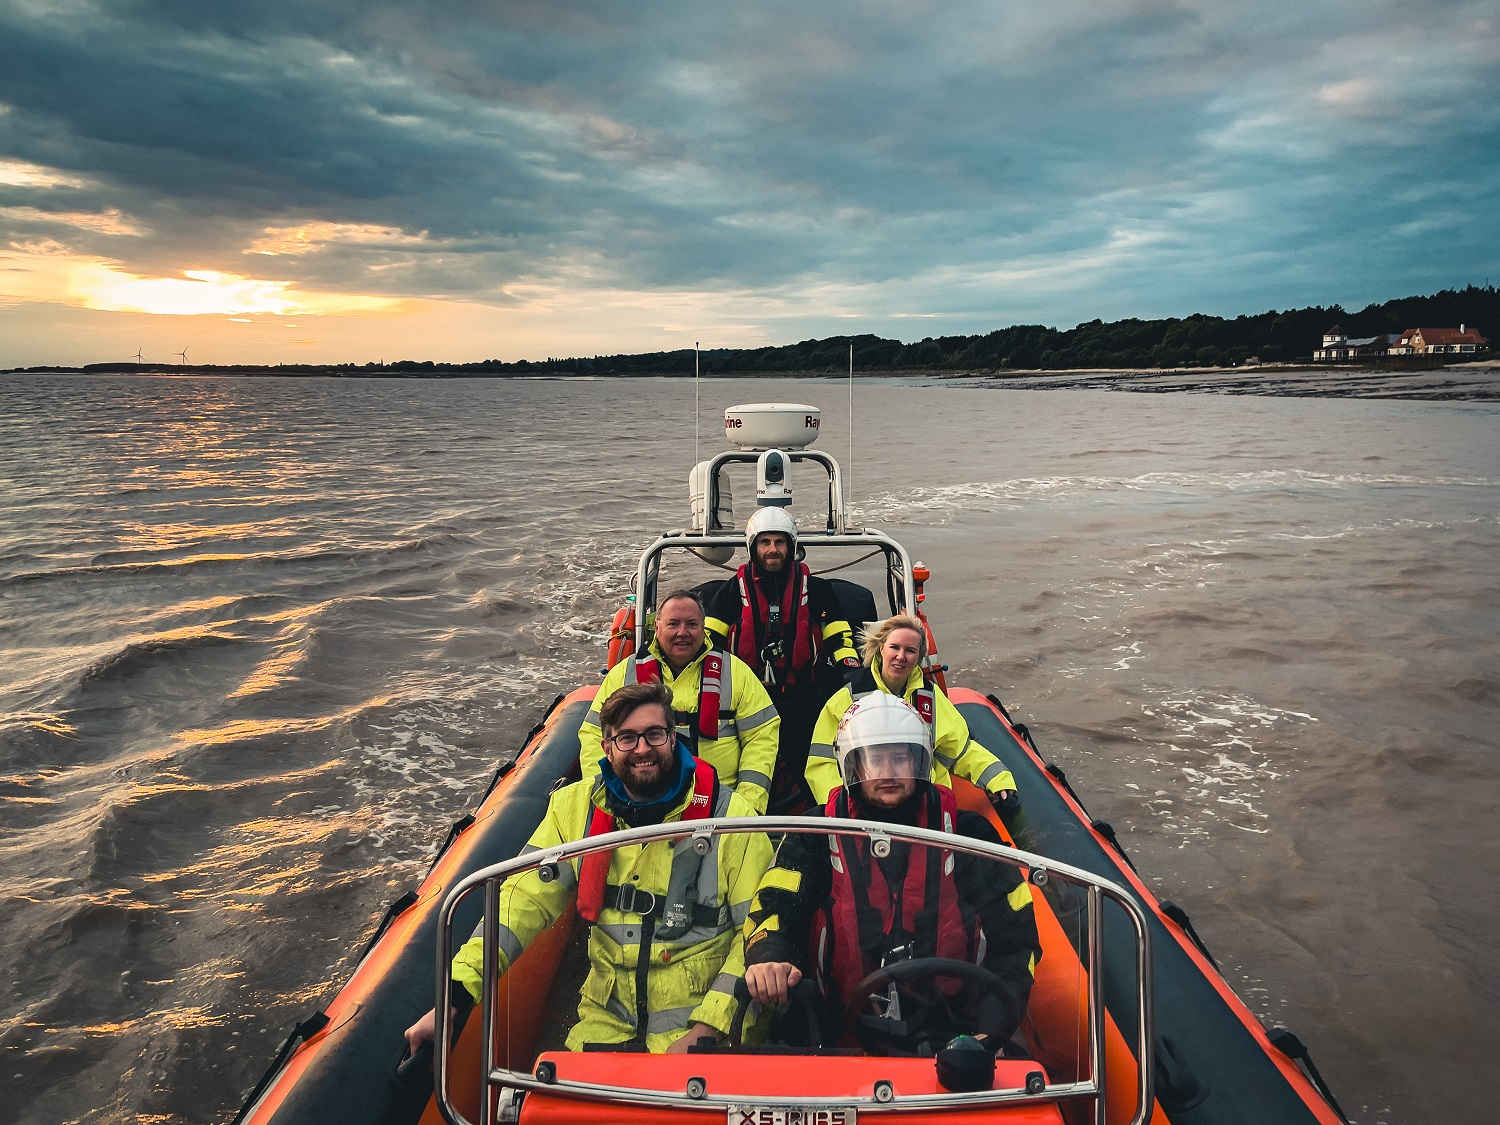 Members of the Hamers team aboard the Humber Rescue boat